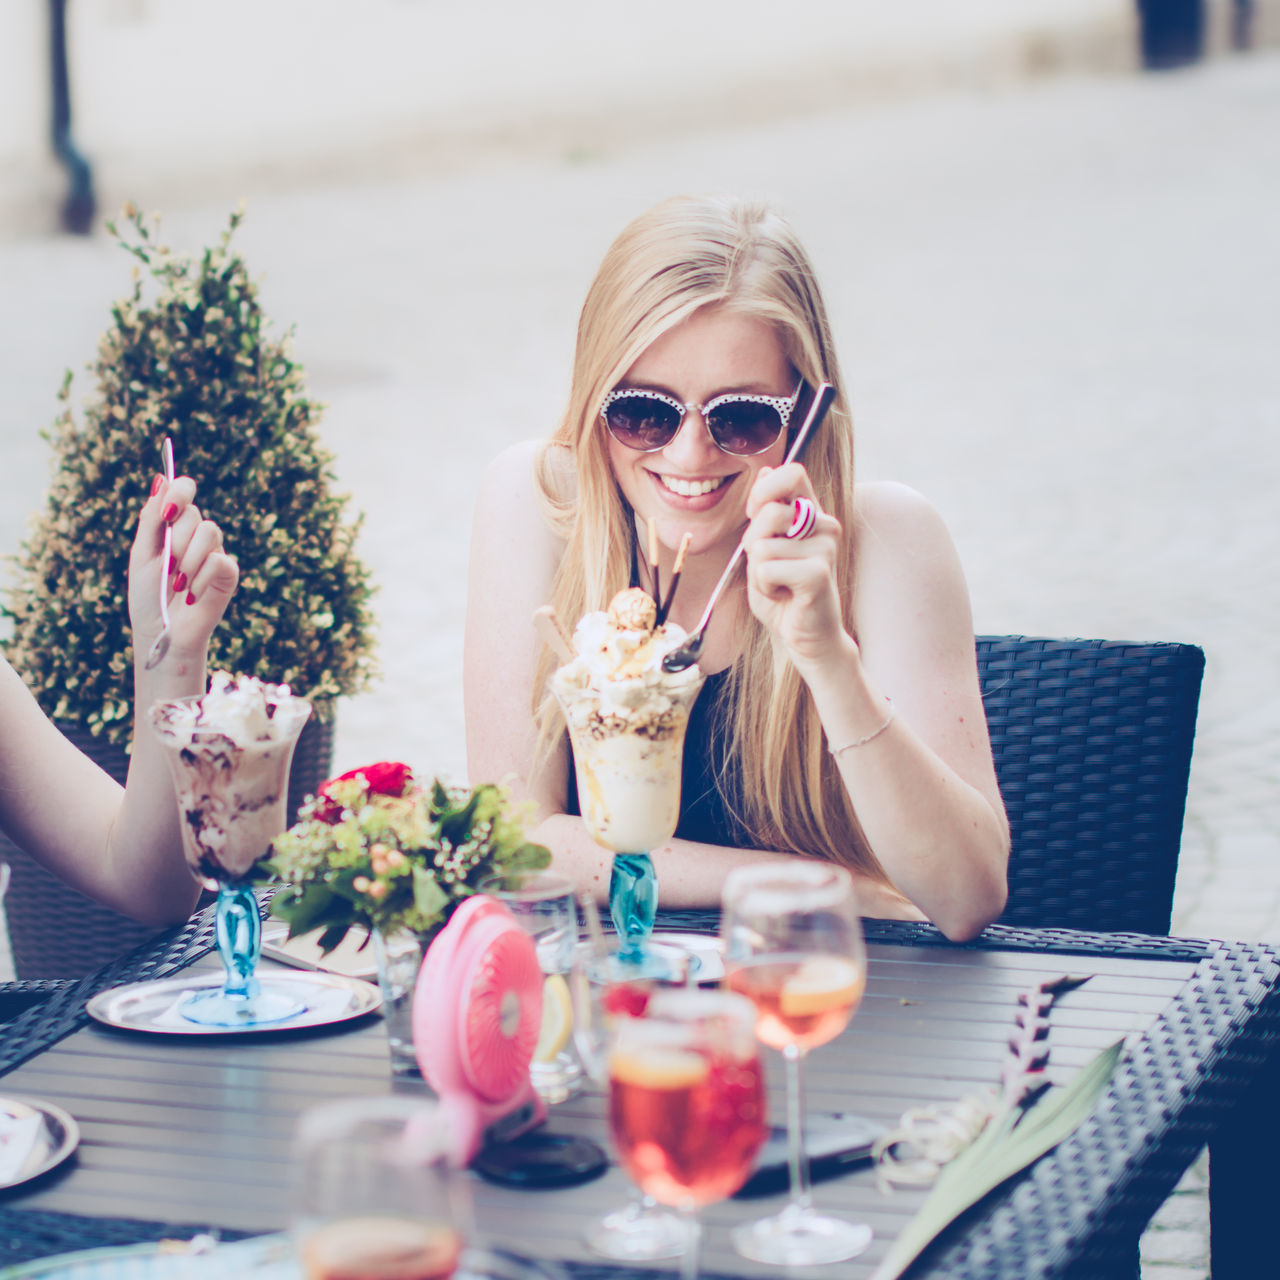 Blond Hair Cafe Day Drink Drinking Friendship Ice Cream Long Hair Only Women Outdoors People Portrait Sitting Smiling Summer Sunglasses Table Young Adult Young Women